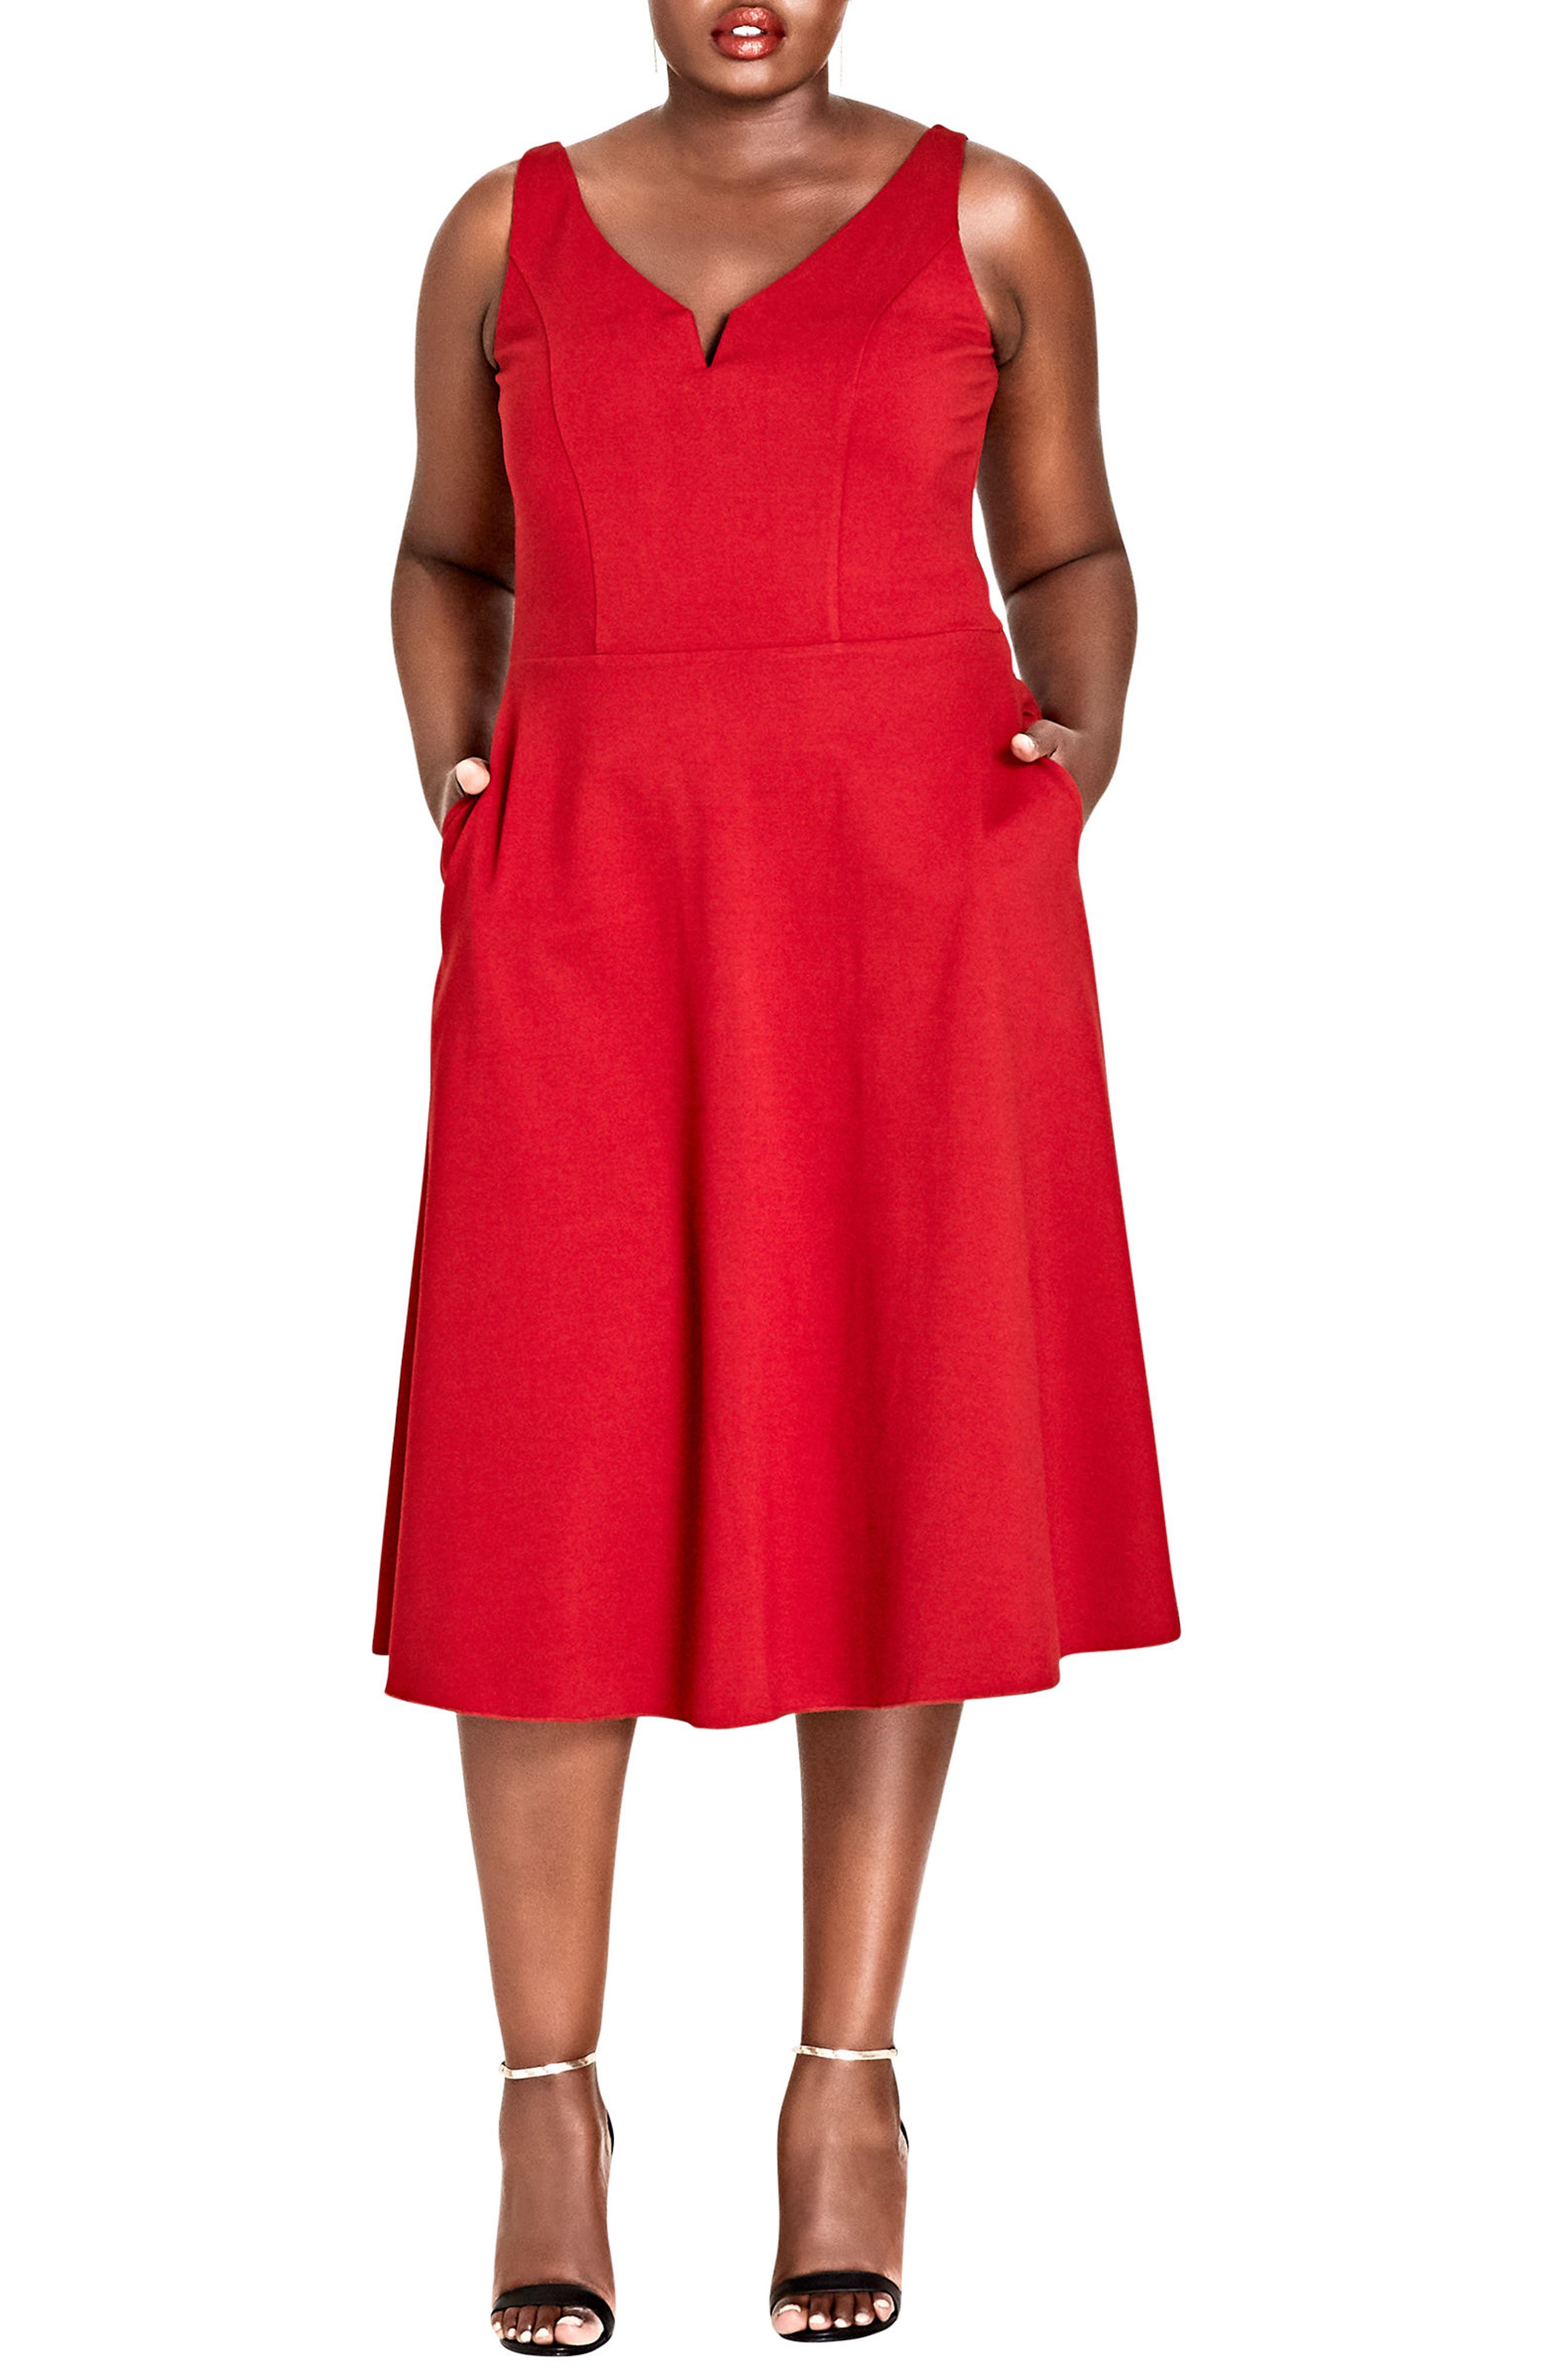 Alternate Image 1 Selected - City Chic Cute Girl Fit & Flare Midi Dress (Plus Size)